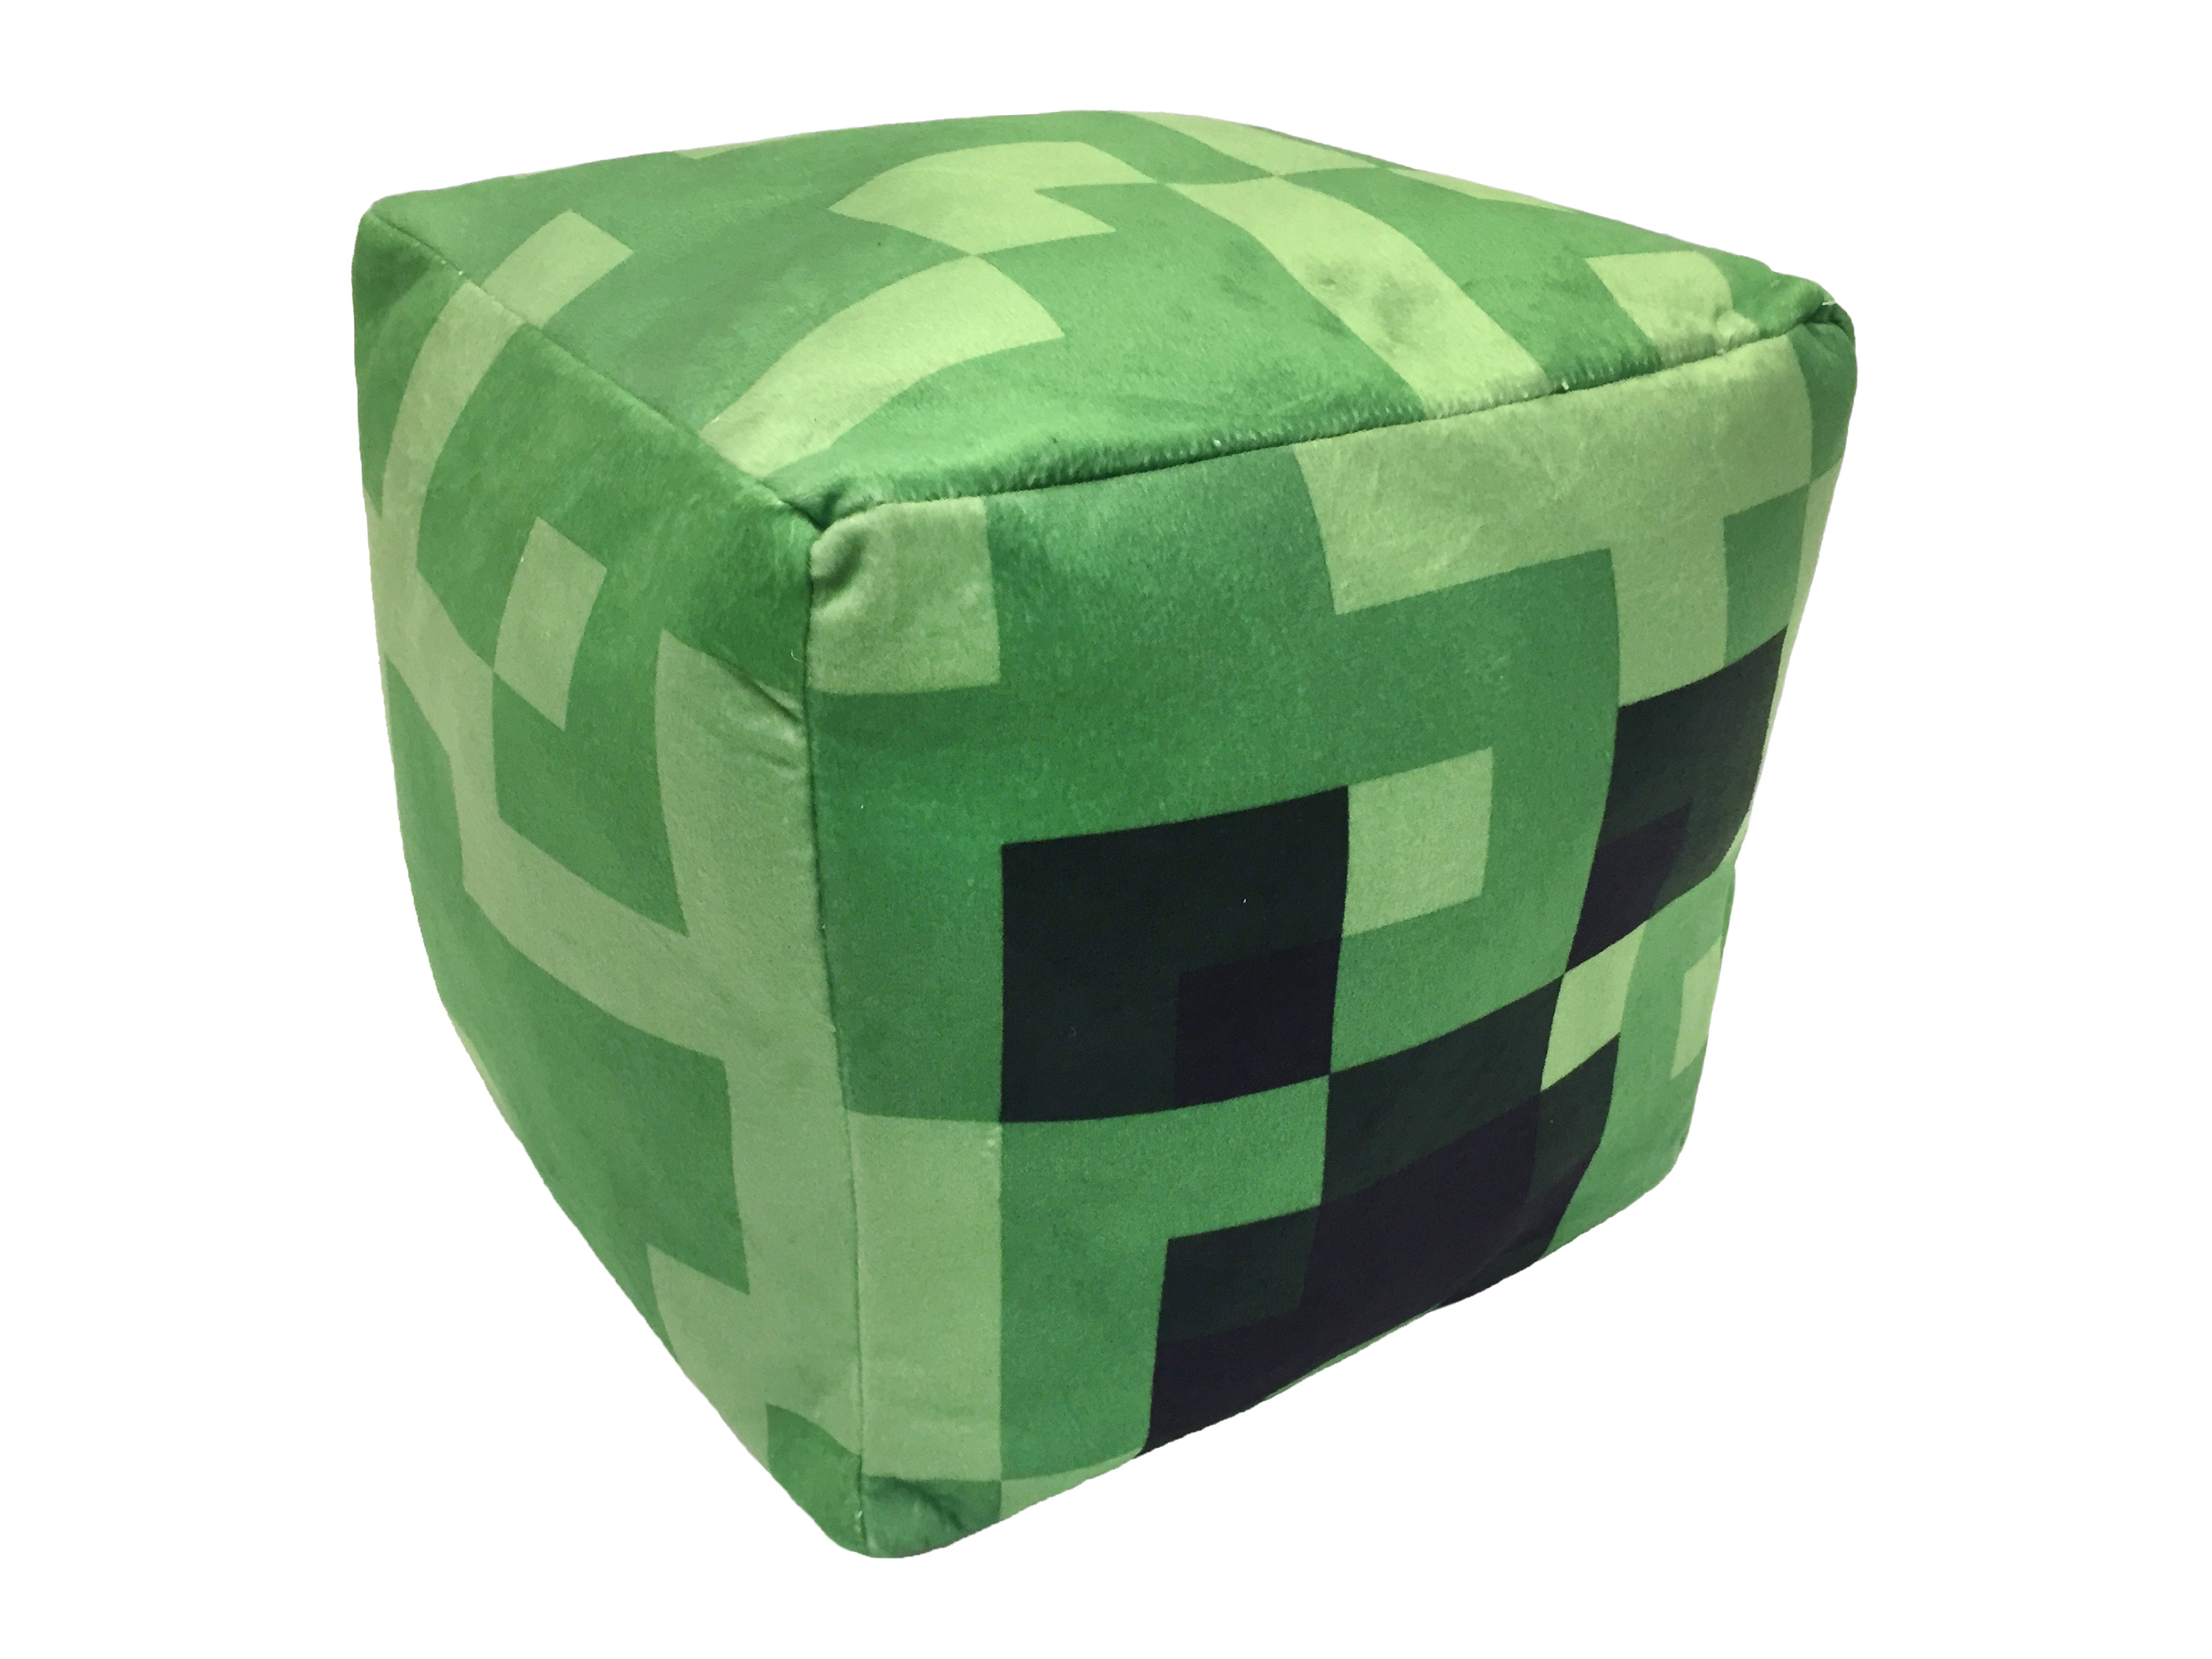 Minecraft Creeper Cube Pillow, Kid's Bedding by Jay Franco